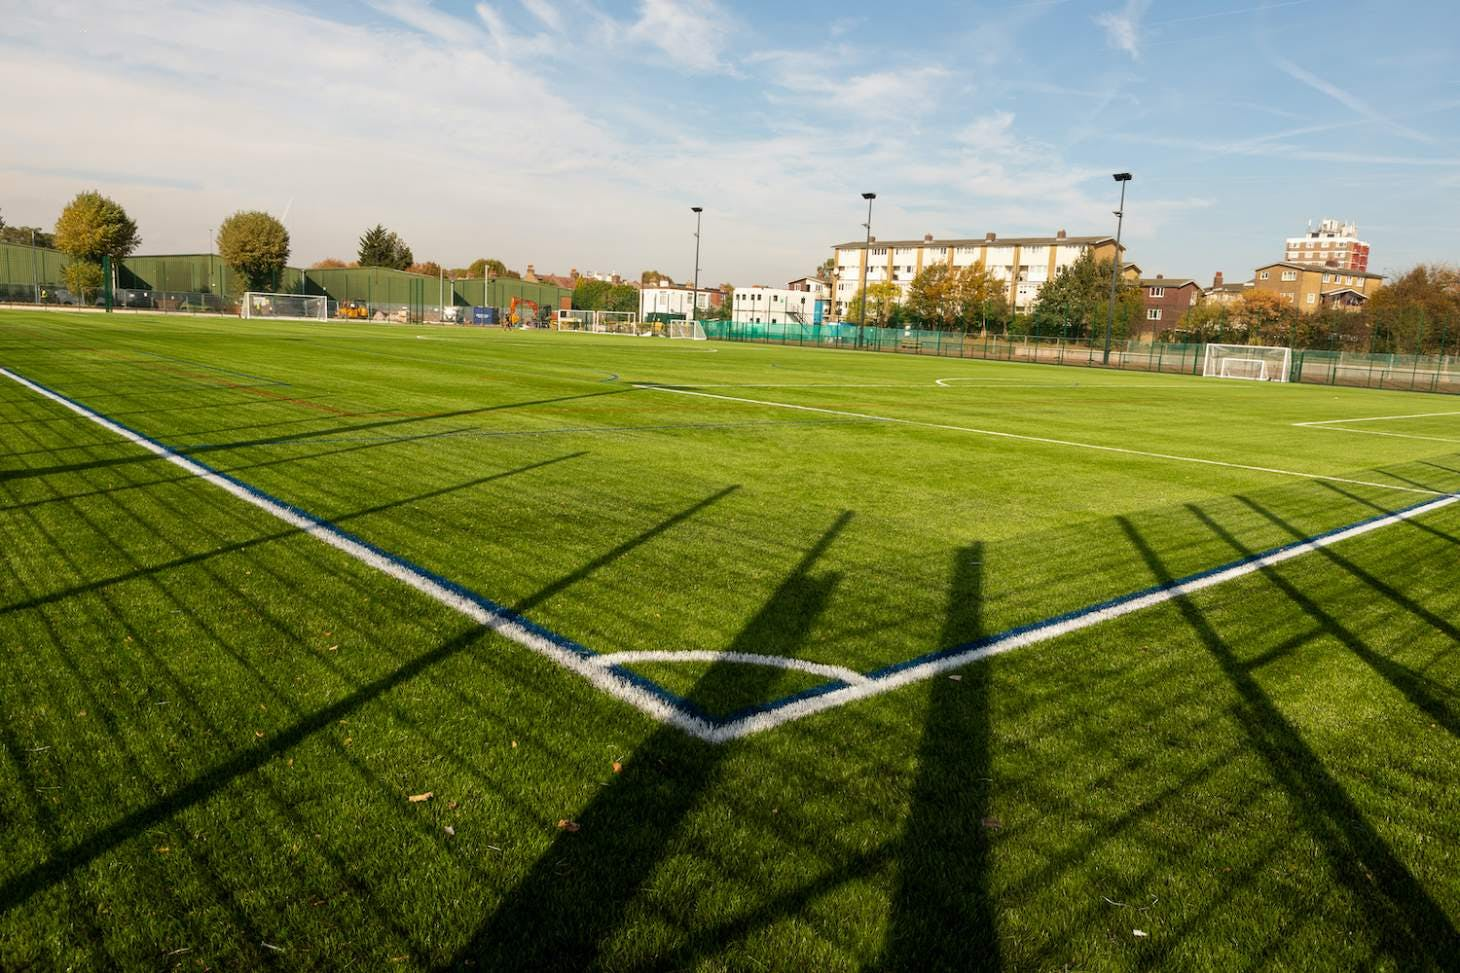 Feel Good Too (formerly Ive Farm Fields) 11 a side | 3G Astroturf football pitch